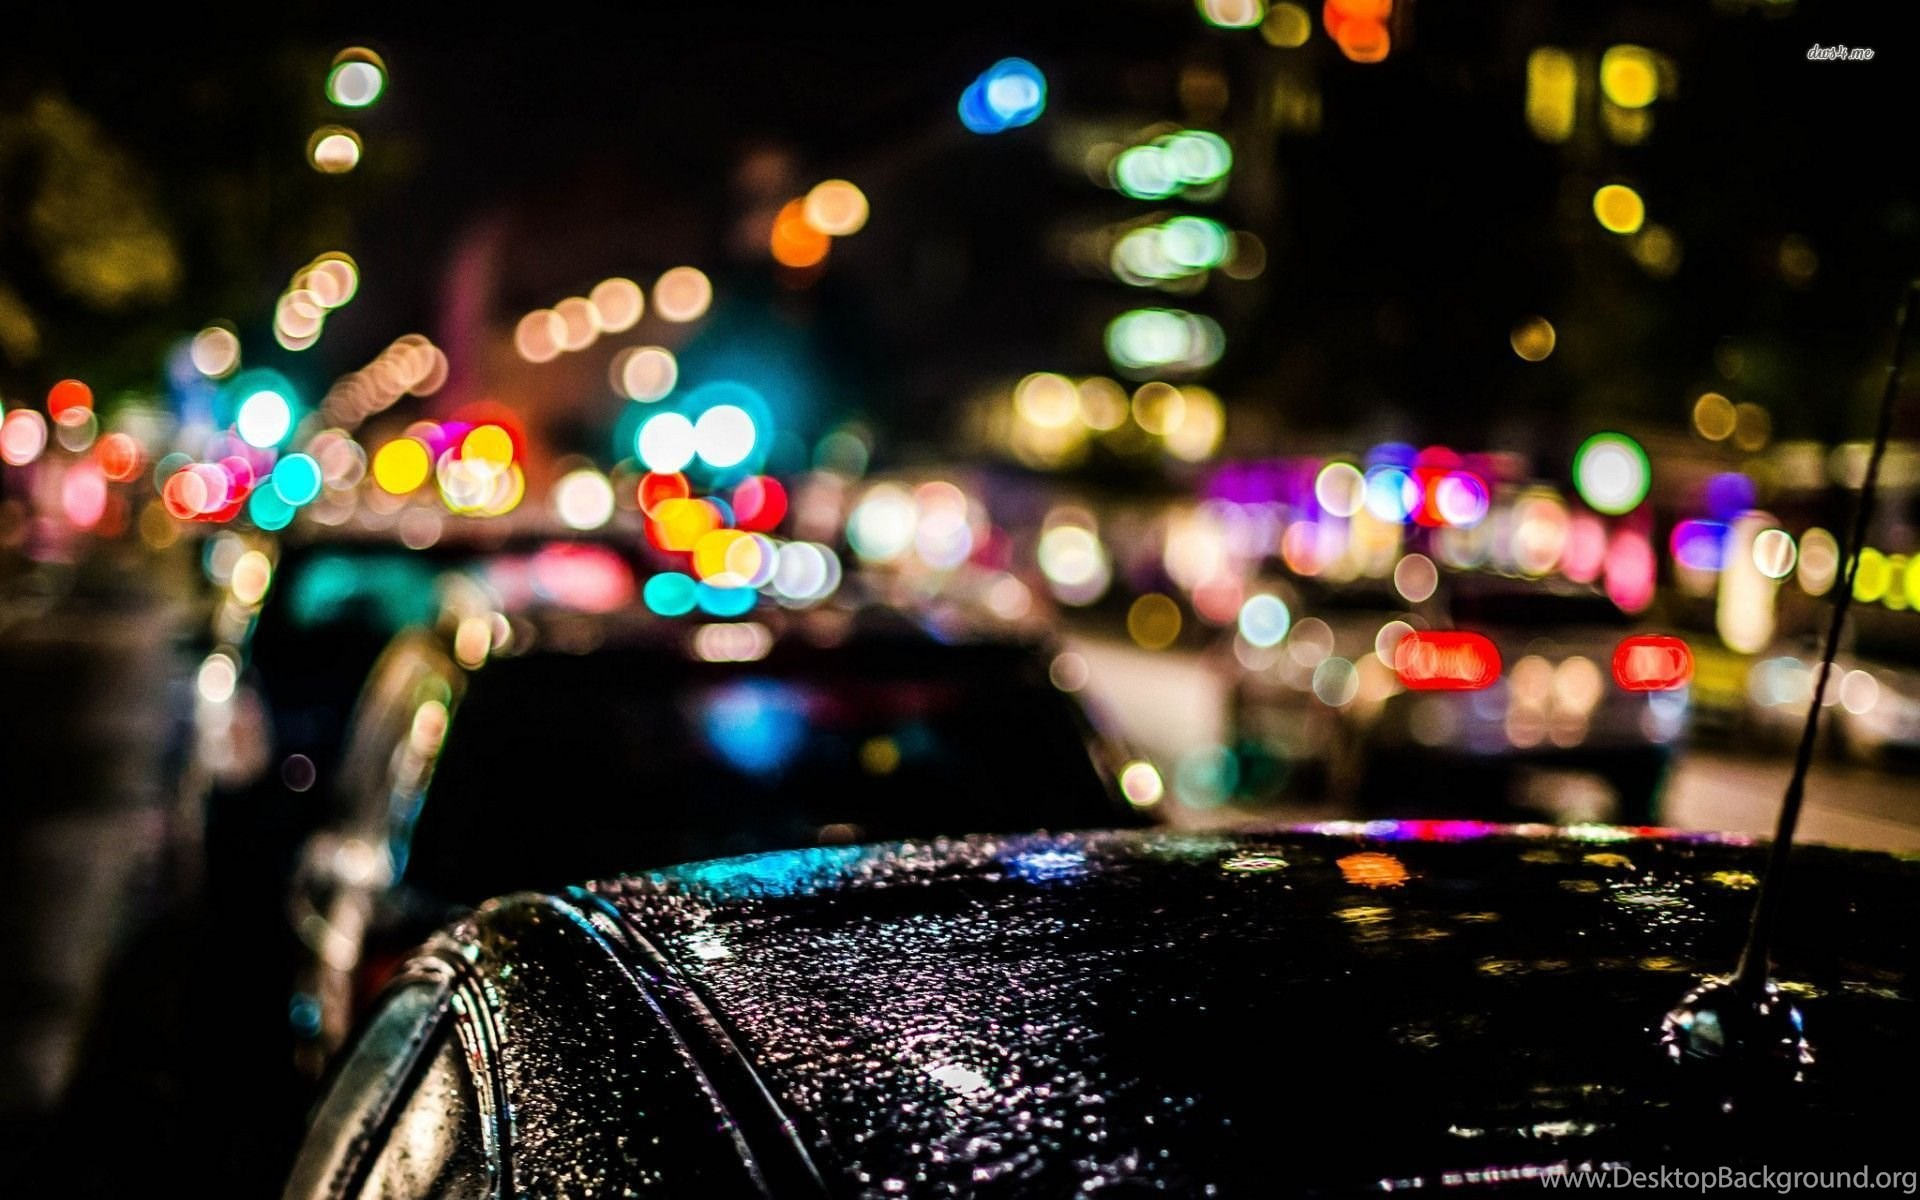 blurred city lights over the cars 1920x1200 photography wallpapers